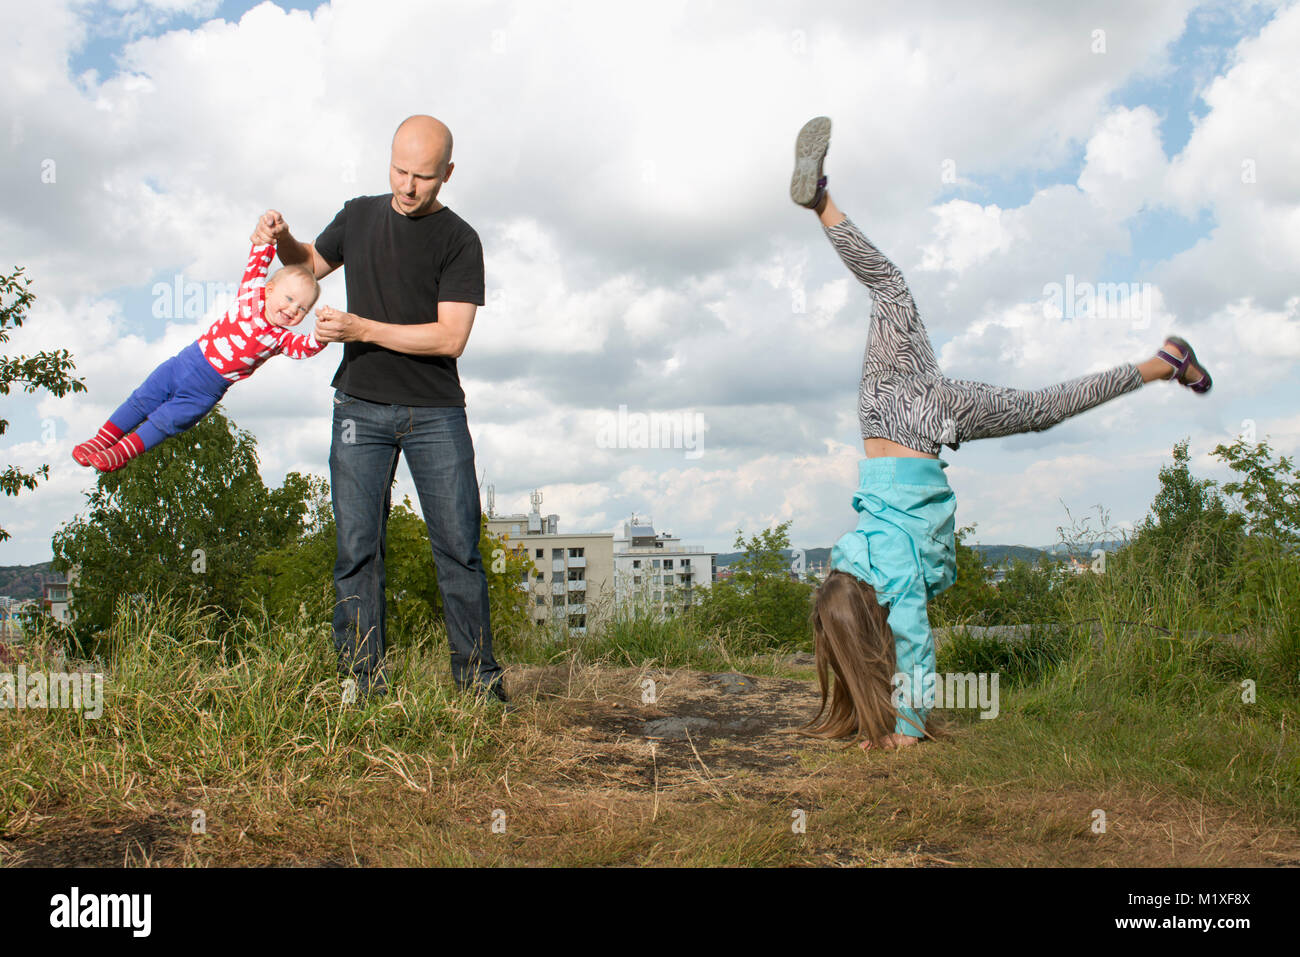 Man playing with his children in Goteborg, Sweden - Stock Image